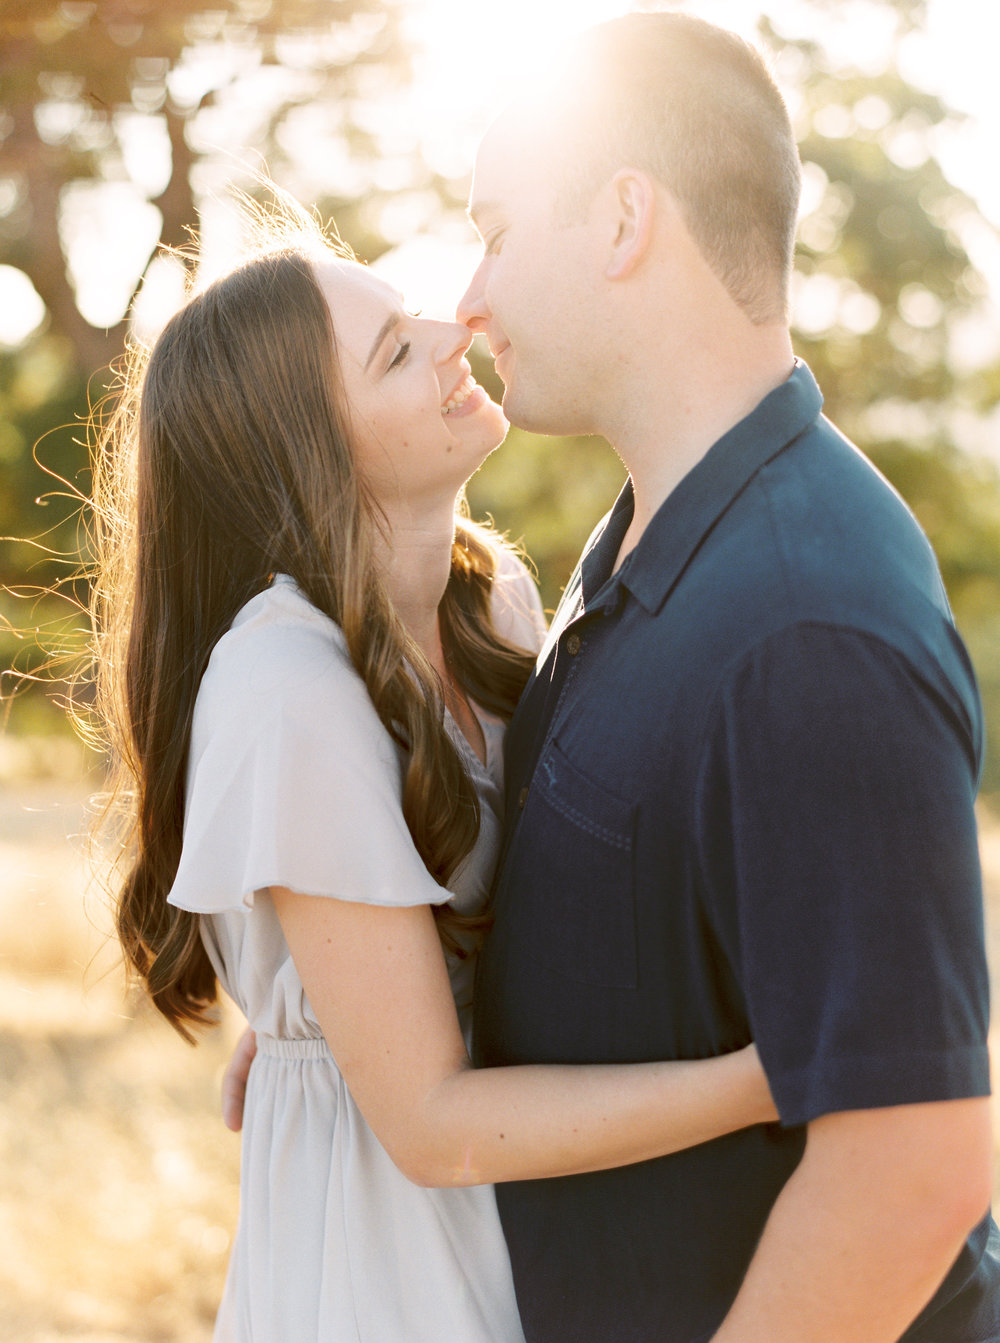 del-valle-livermore-engagement-31.jpg